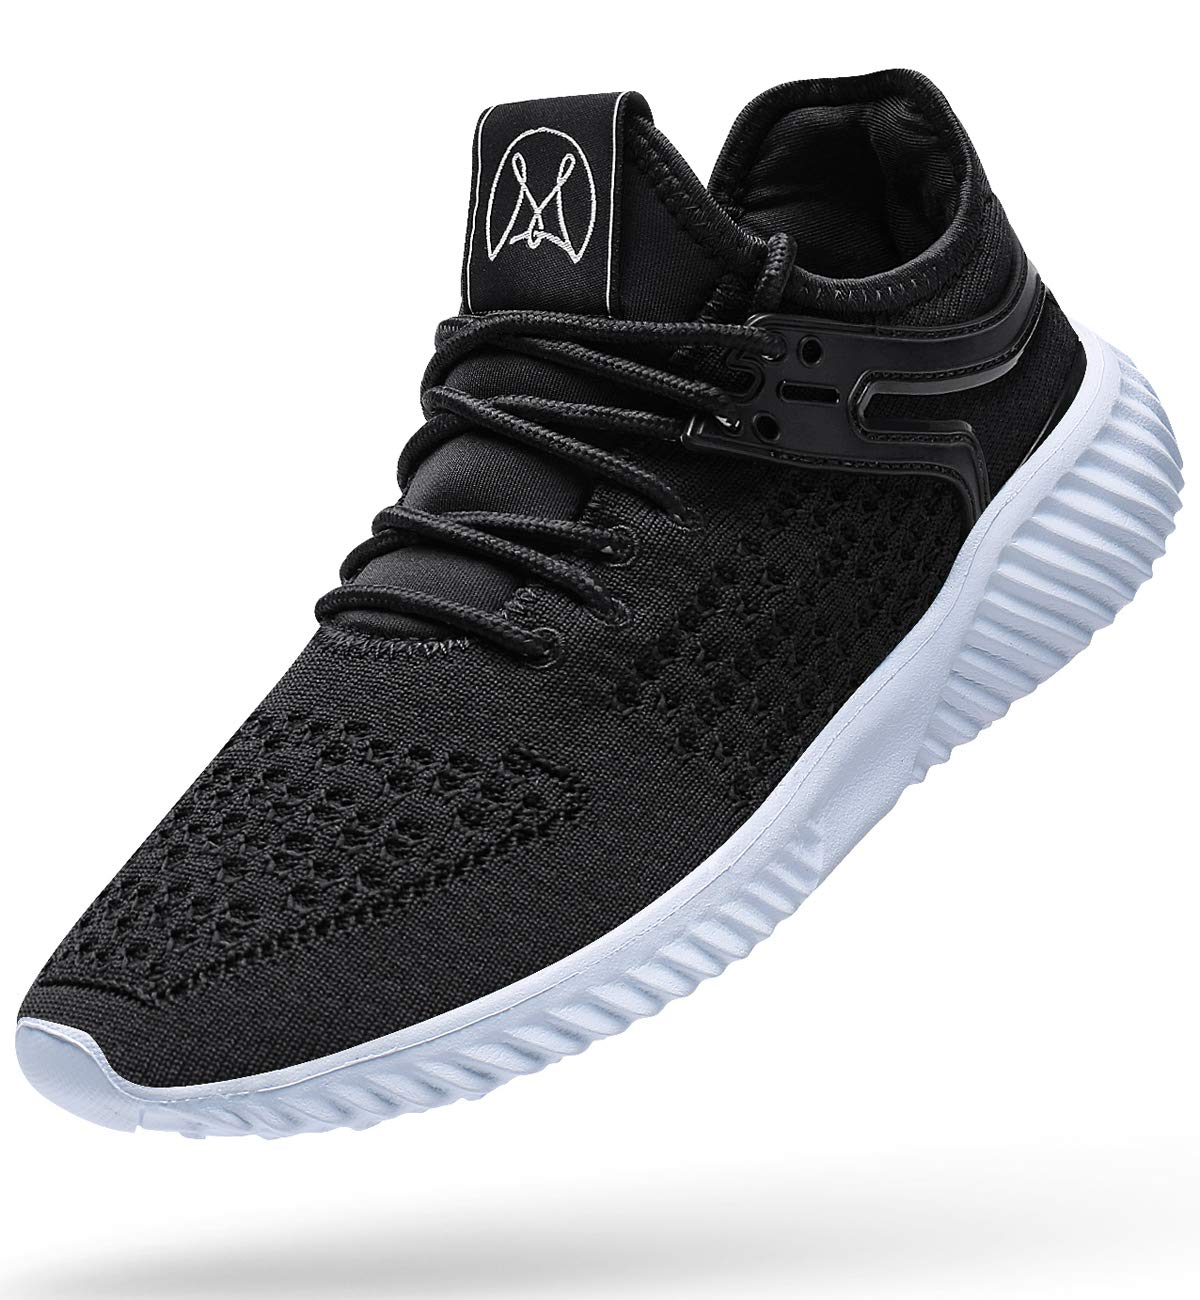 Wonesion Mens Fashion Sneakers Mesh Lightweight Breathable Sport Fitness Jogging Runnning Shoes